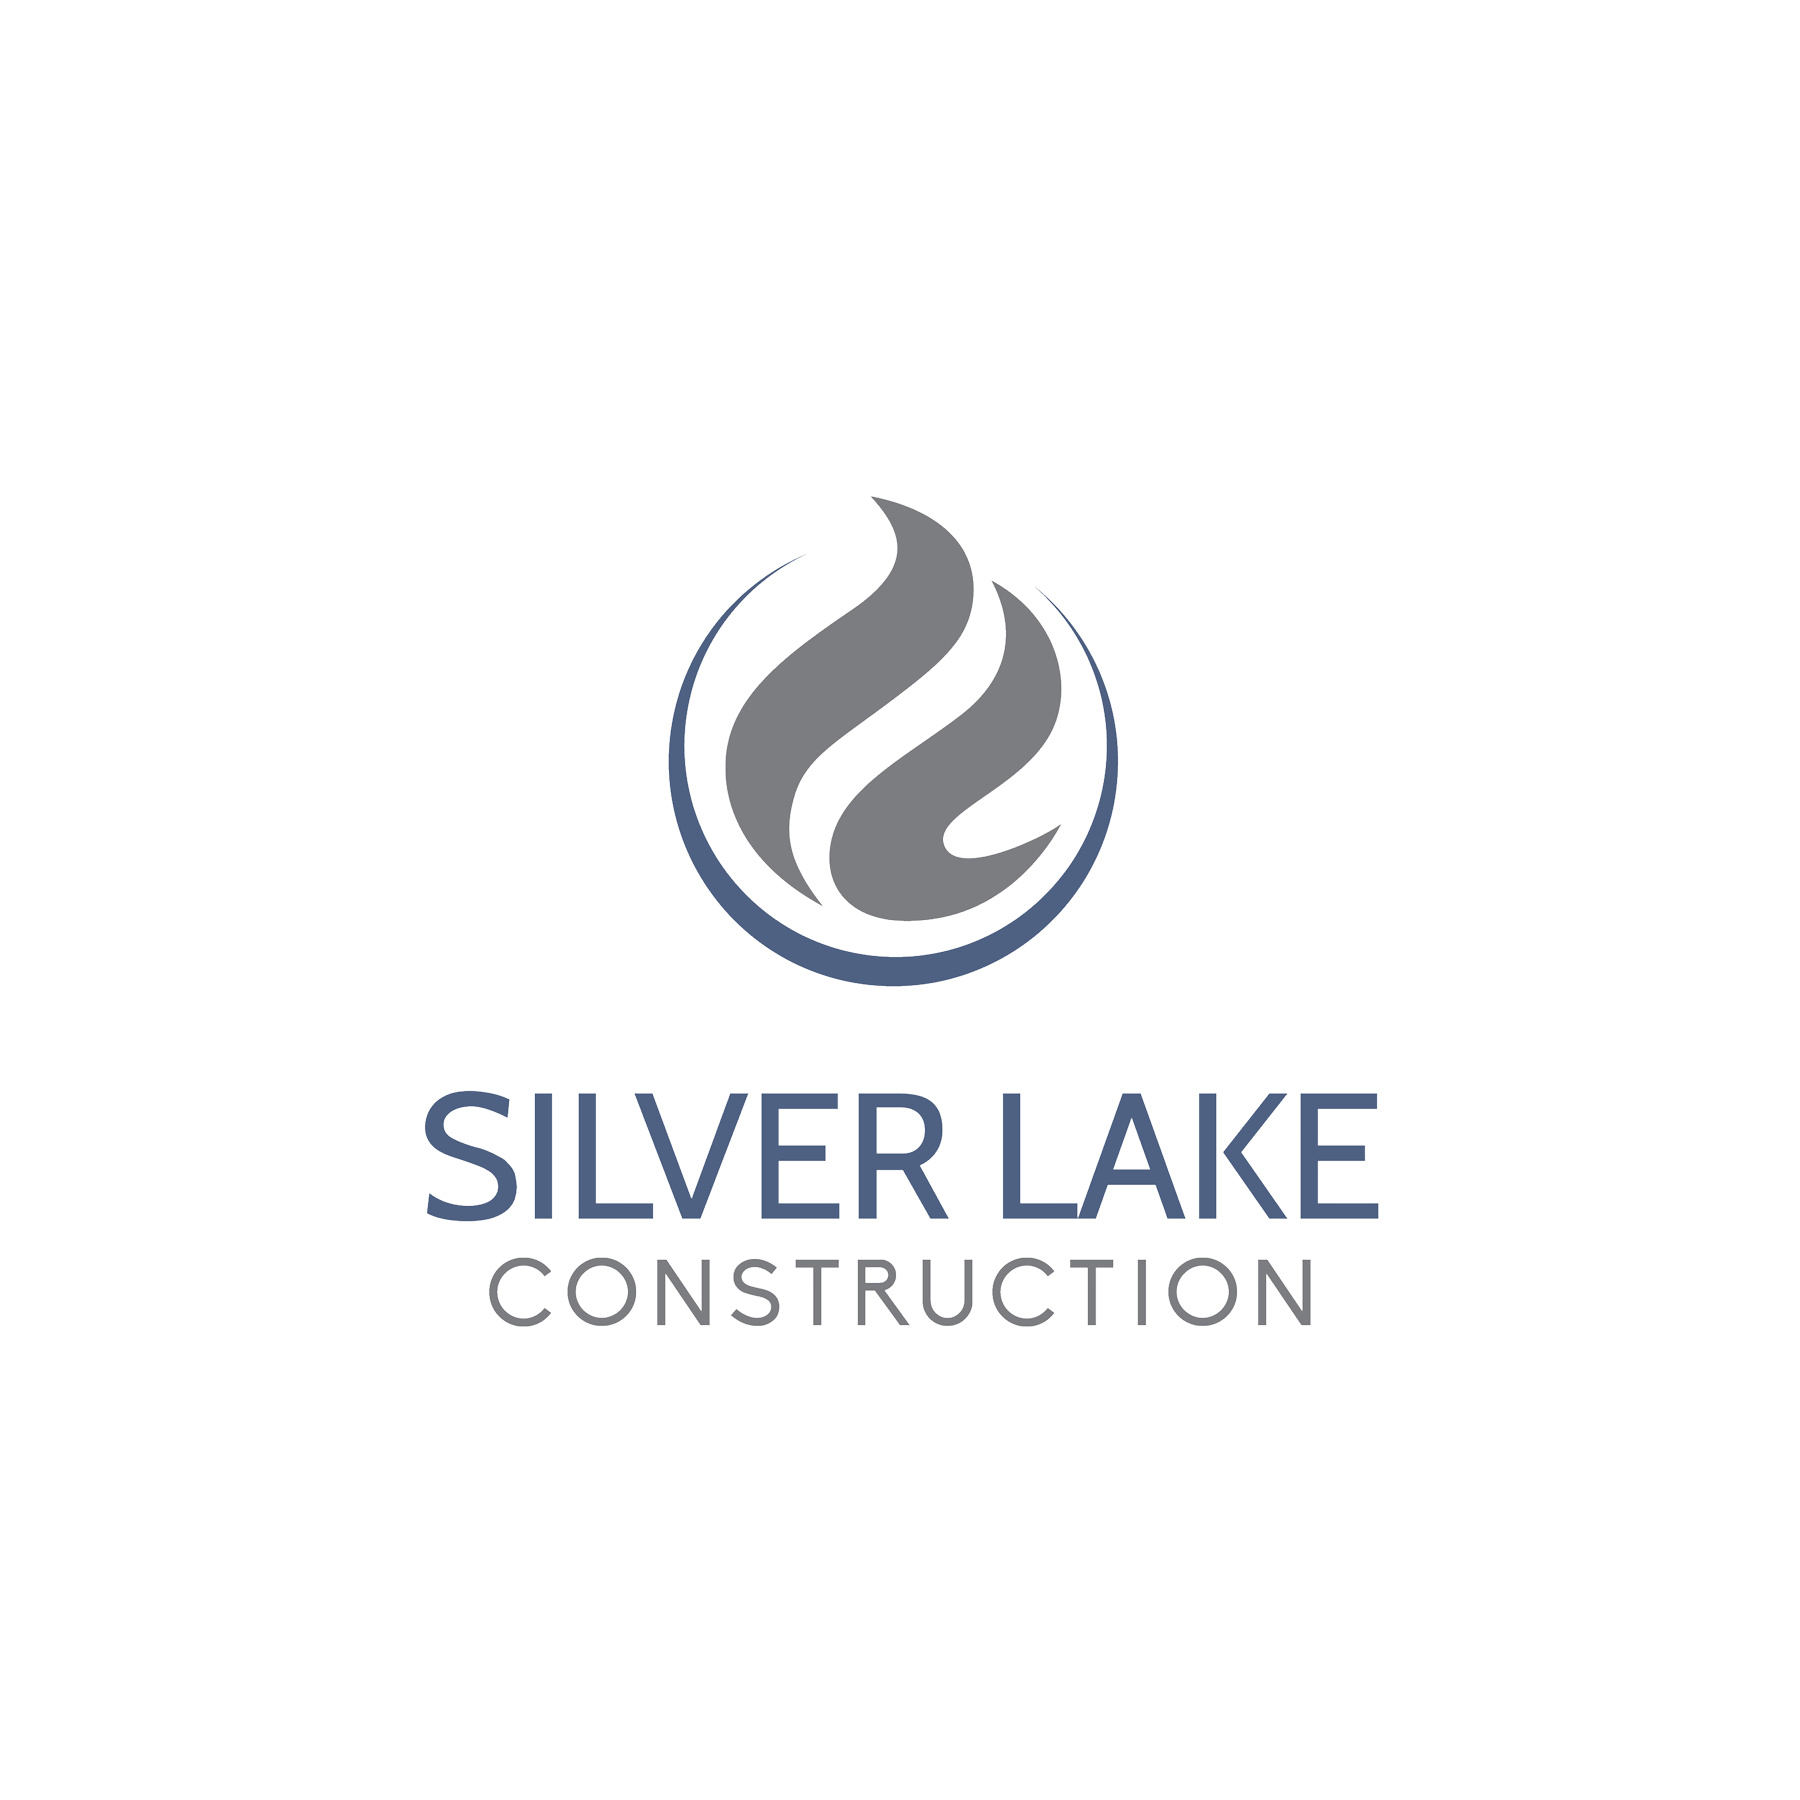 Silver Lake Construction is 8(a) certified through the Small Business Administration and provides heavy construction and engineering services for new builds, reconstruction, rehabilitation, repairs, and building renovations to its federal government clients.